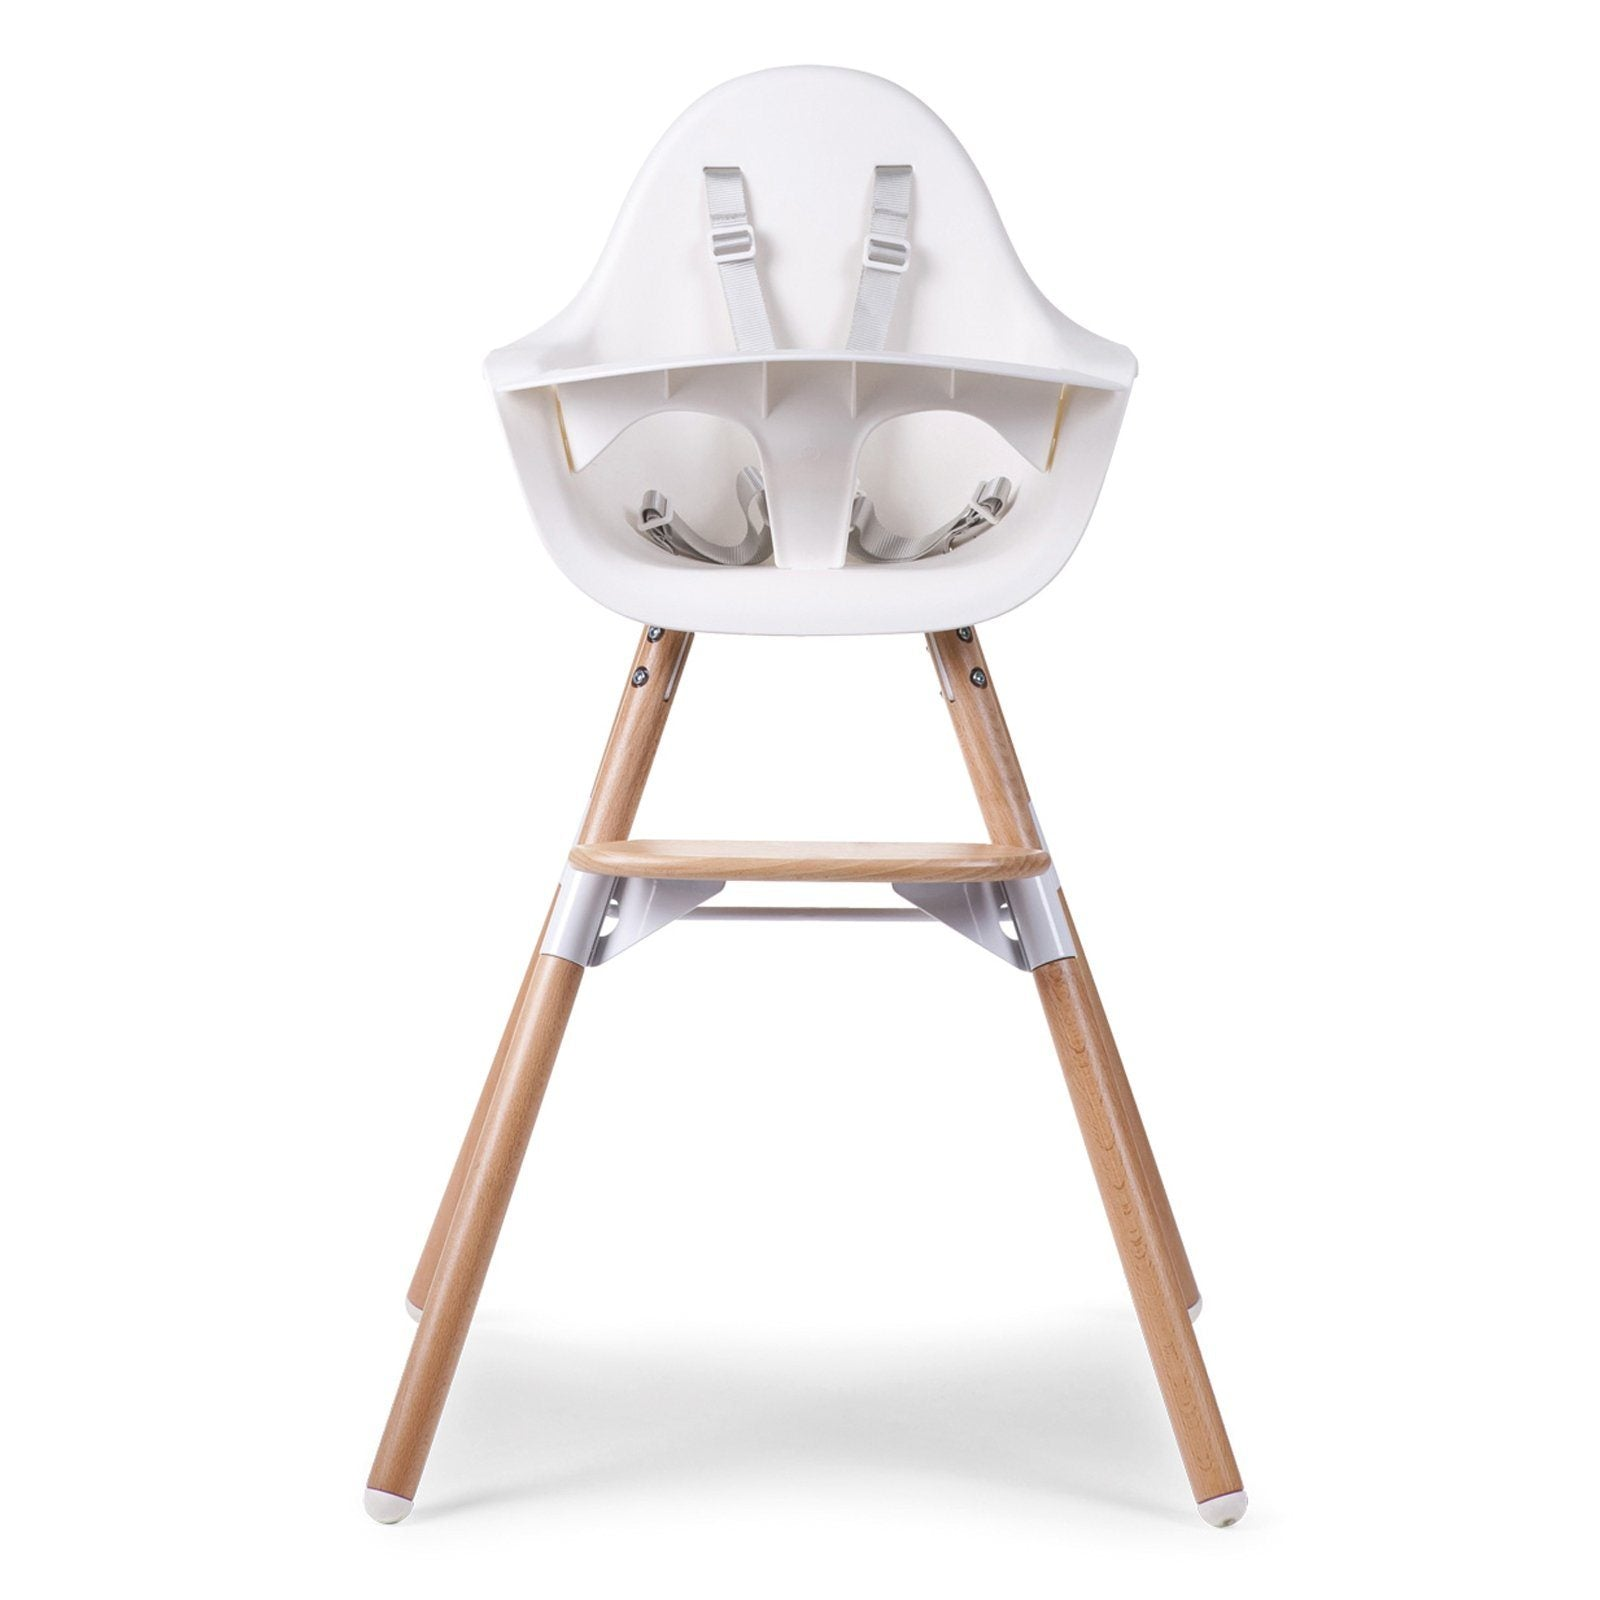 Evolu 2 Chair - Natural / White Childhome